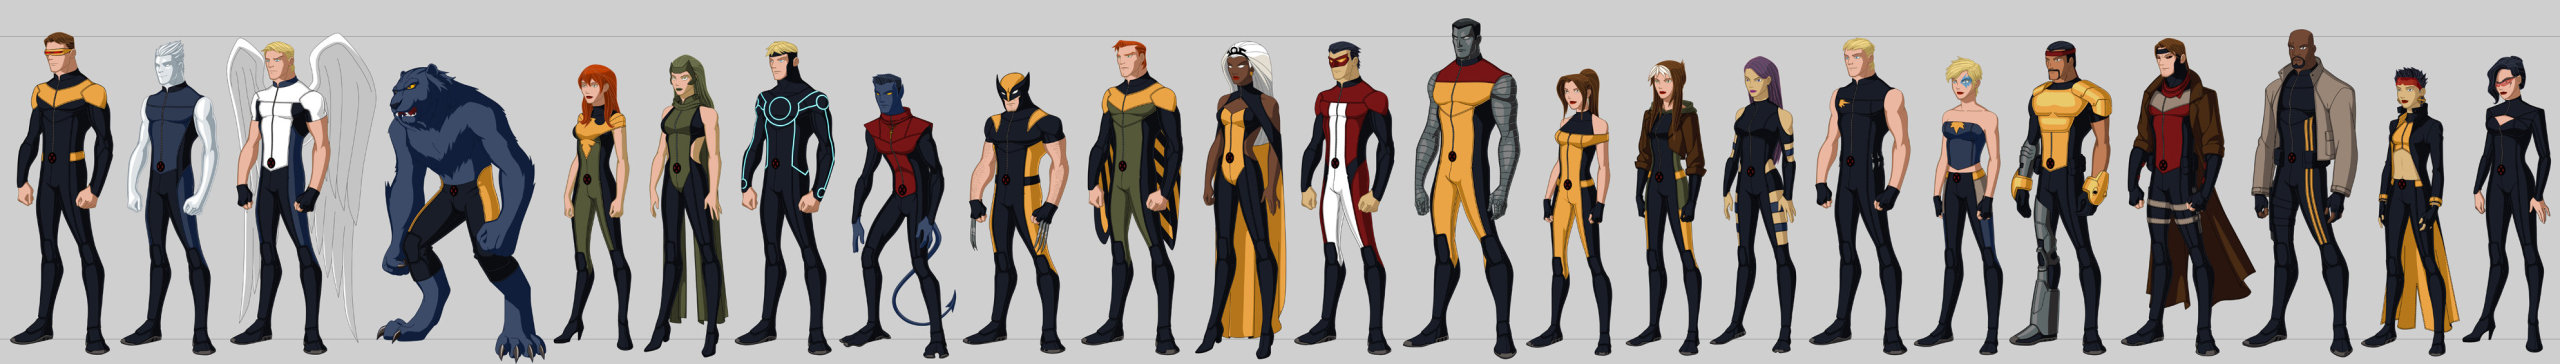 professorxisajerk:  X-Men redesigns by Scott Ngo. From Cyclops to Sage.